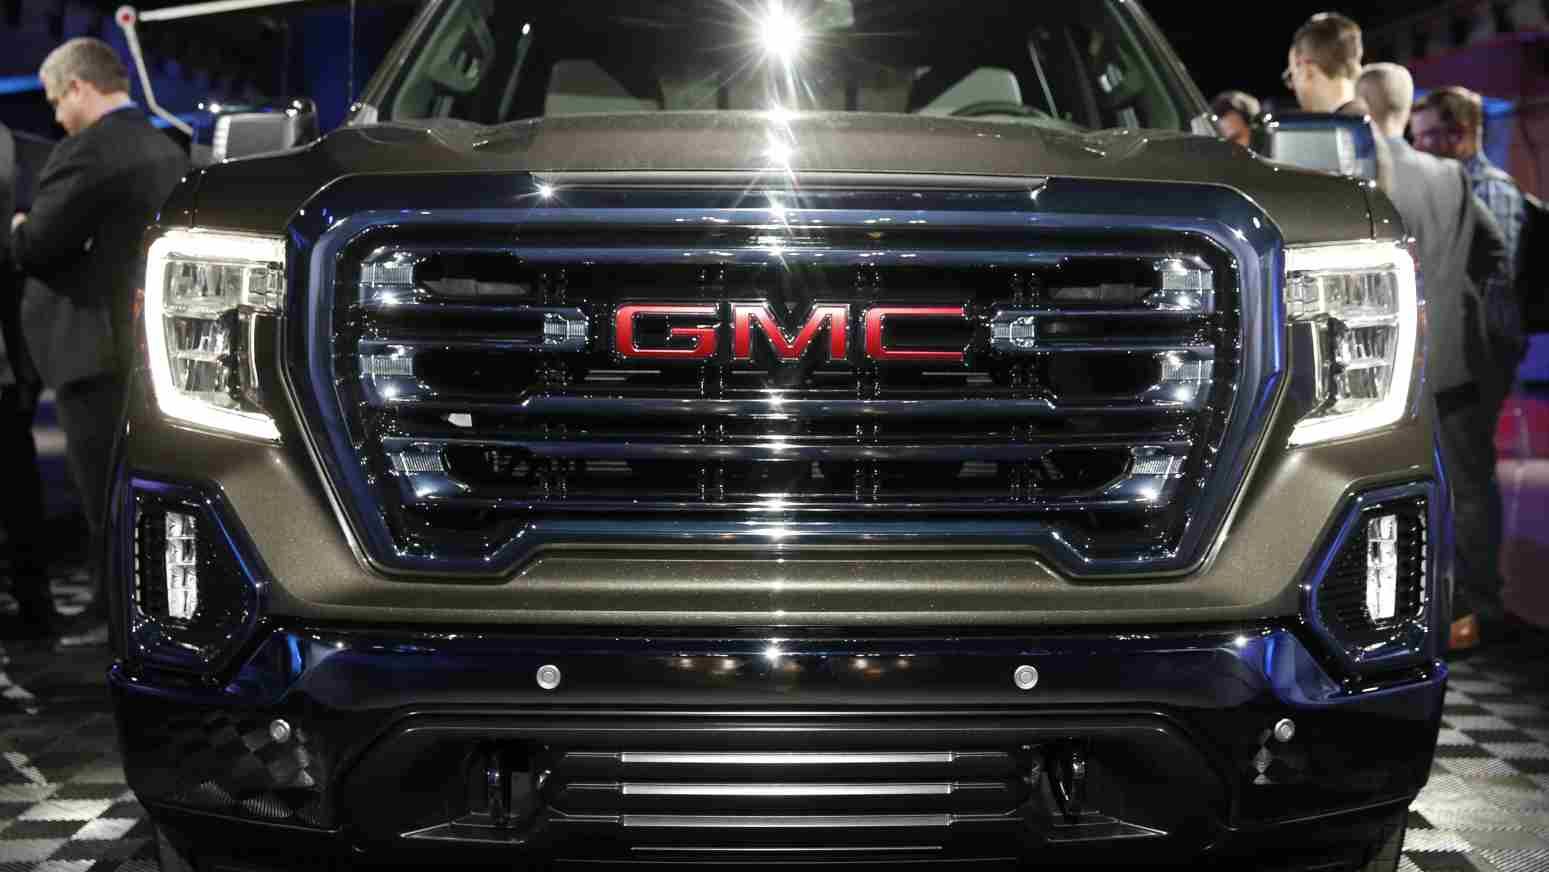 General Motors to steer $670 million in contributions to pension